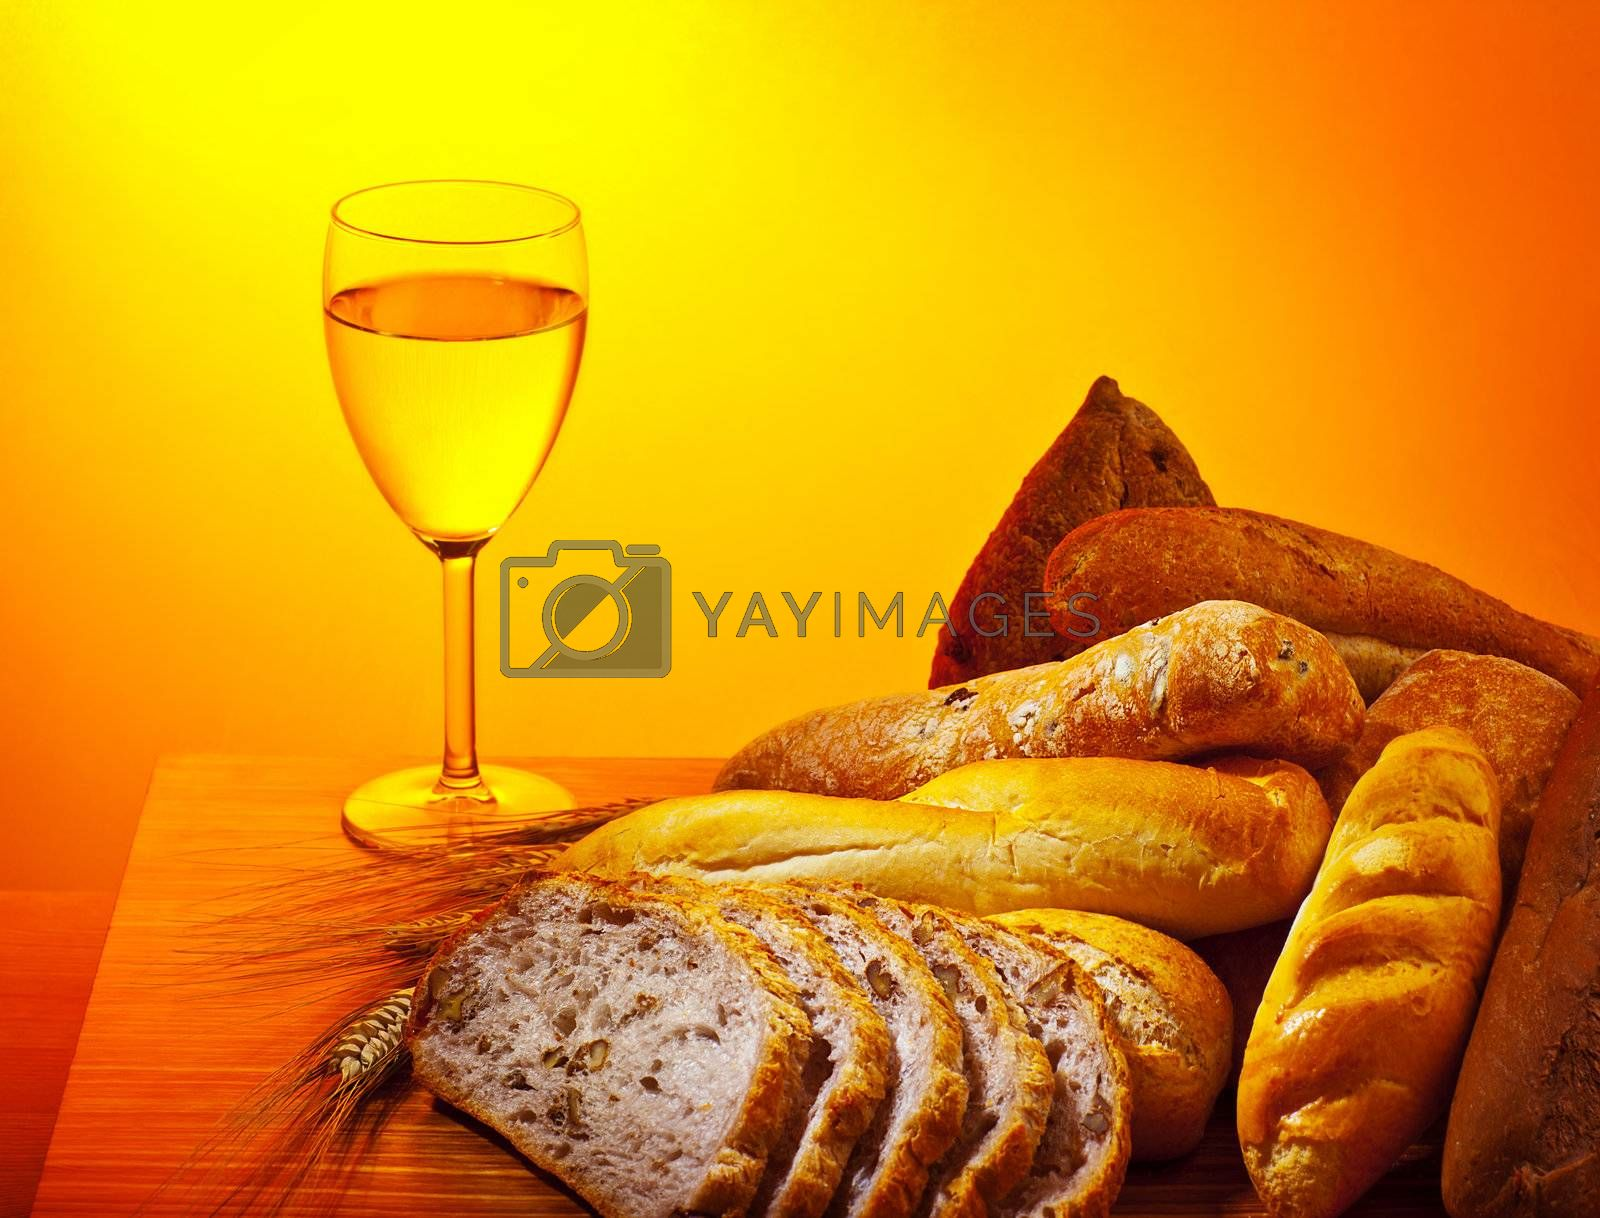 Holy supper, communion dinner, bread and glass of wine, Sunday christian traditional food, celebrating religious holidays